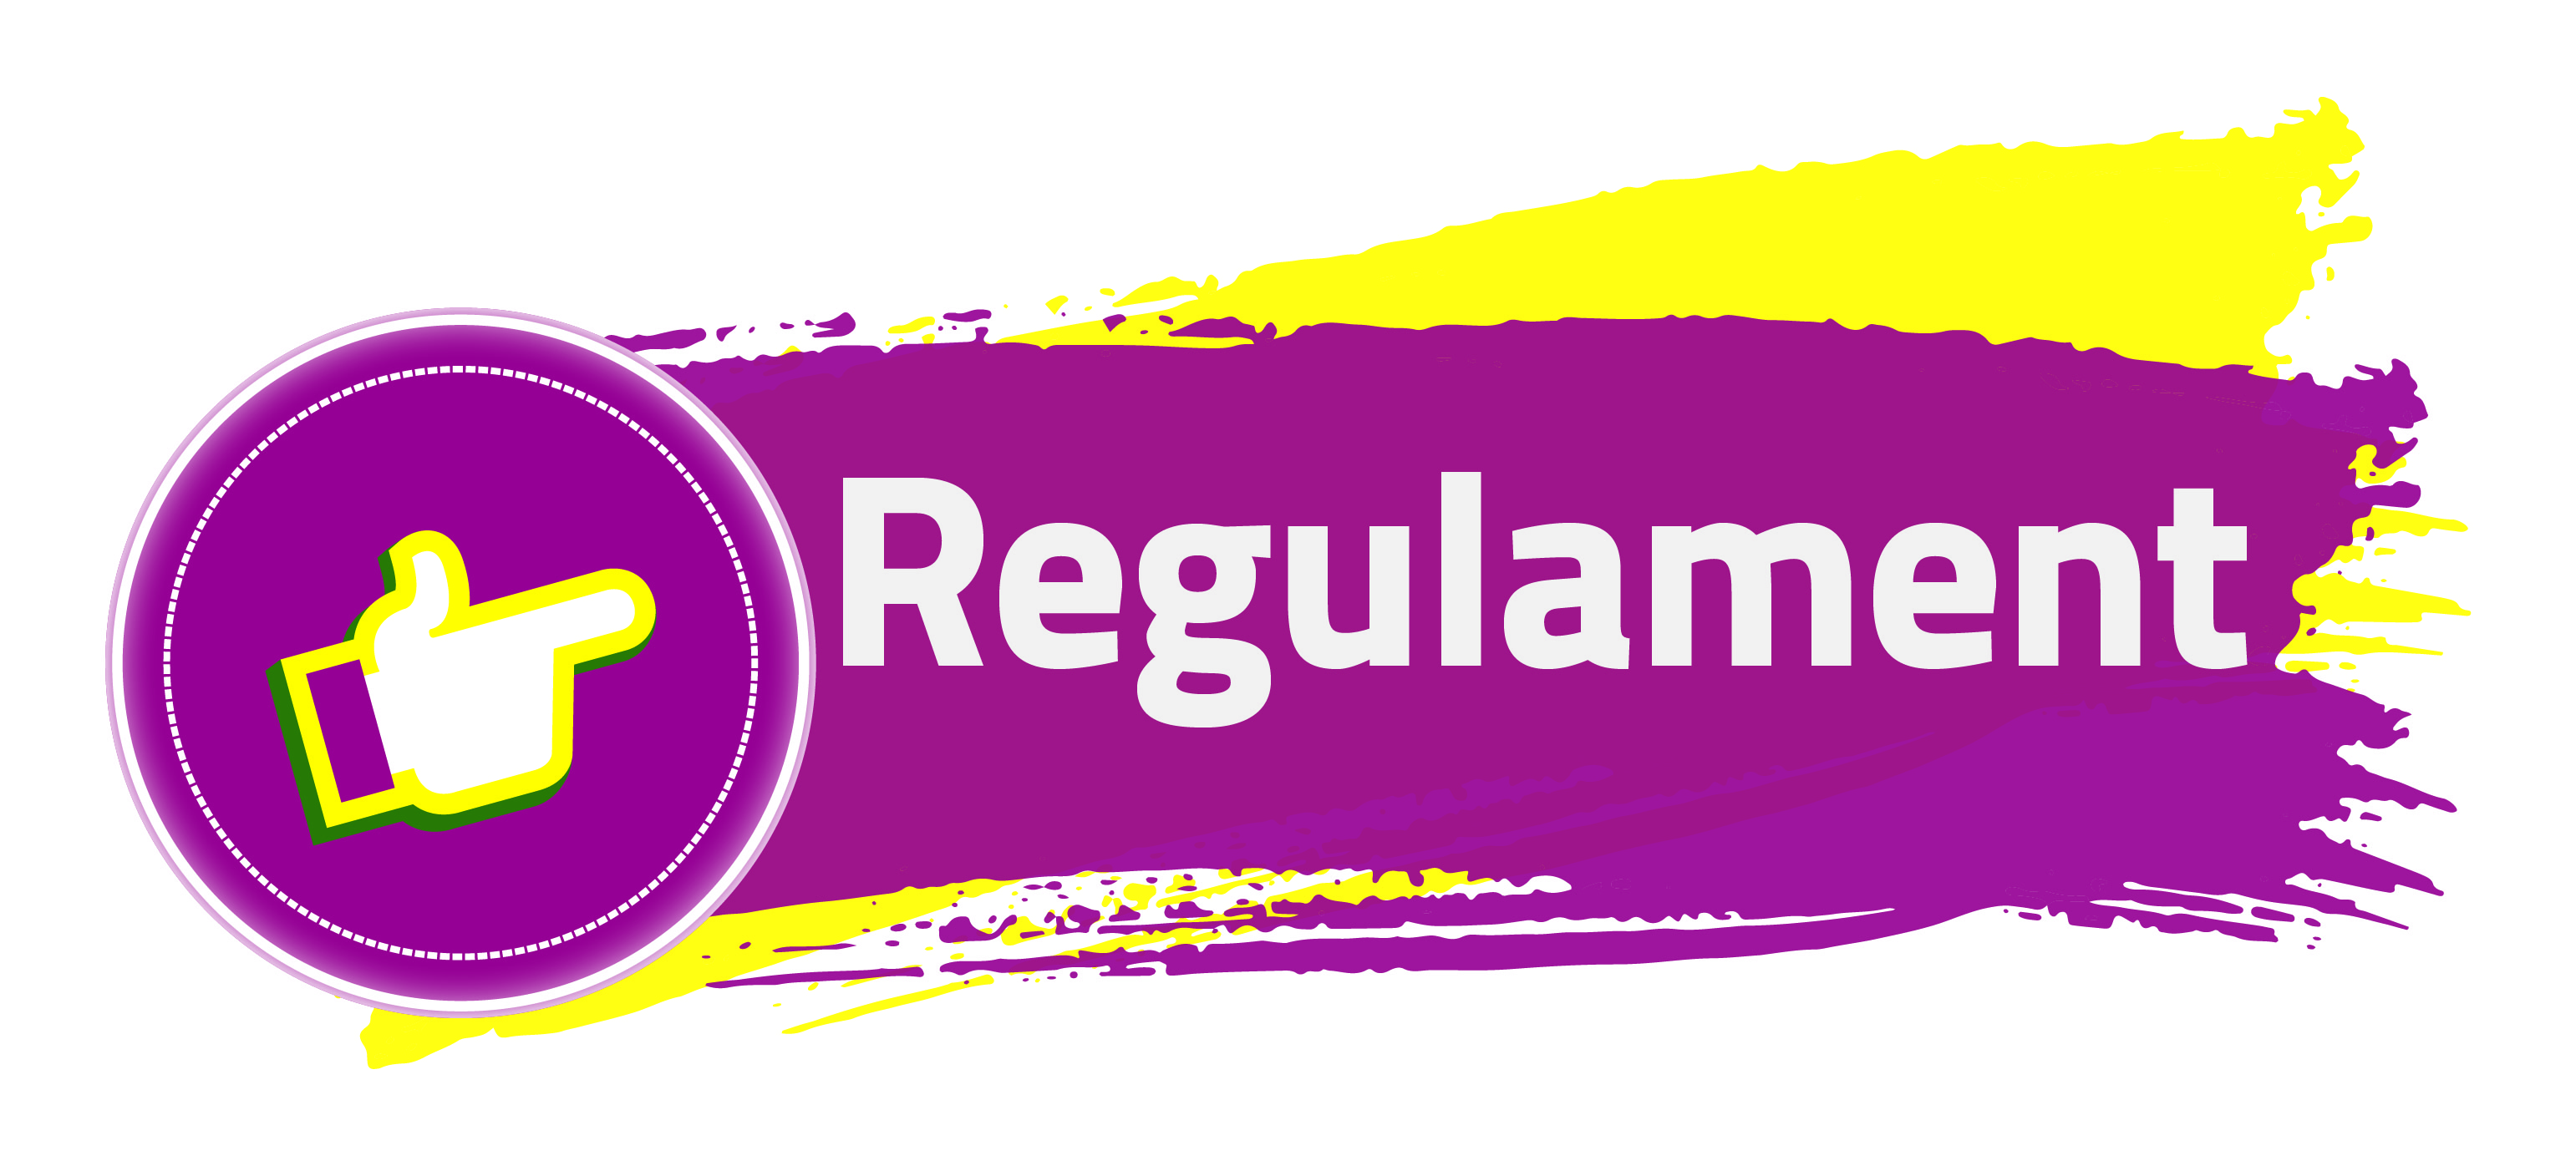 regulament-button